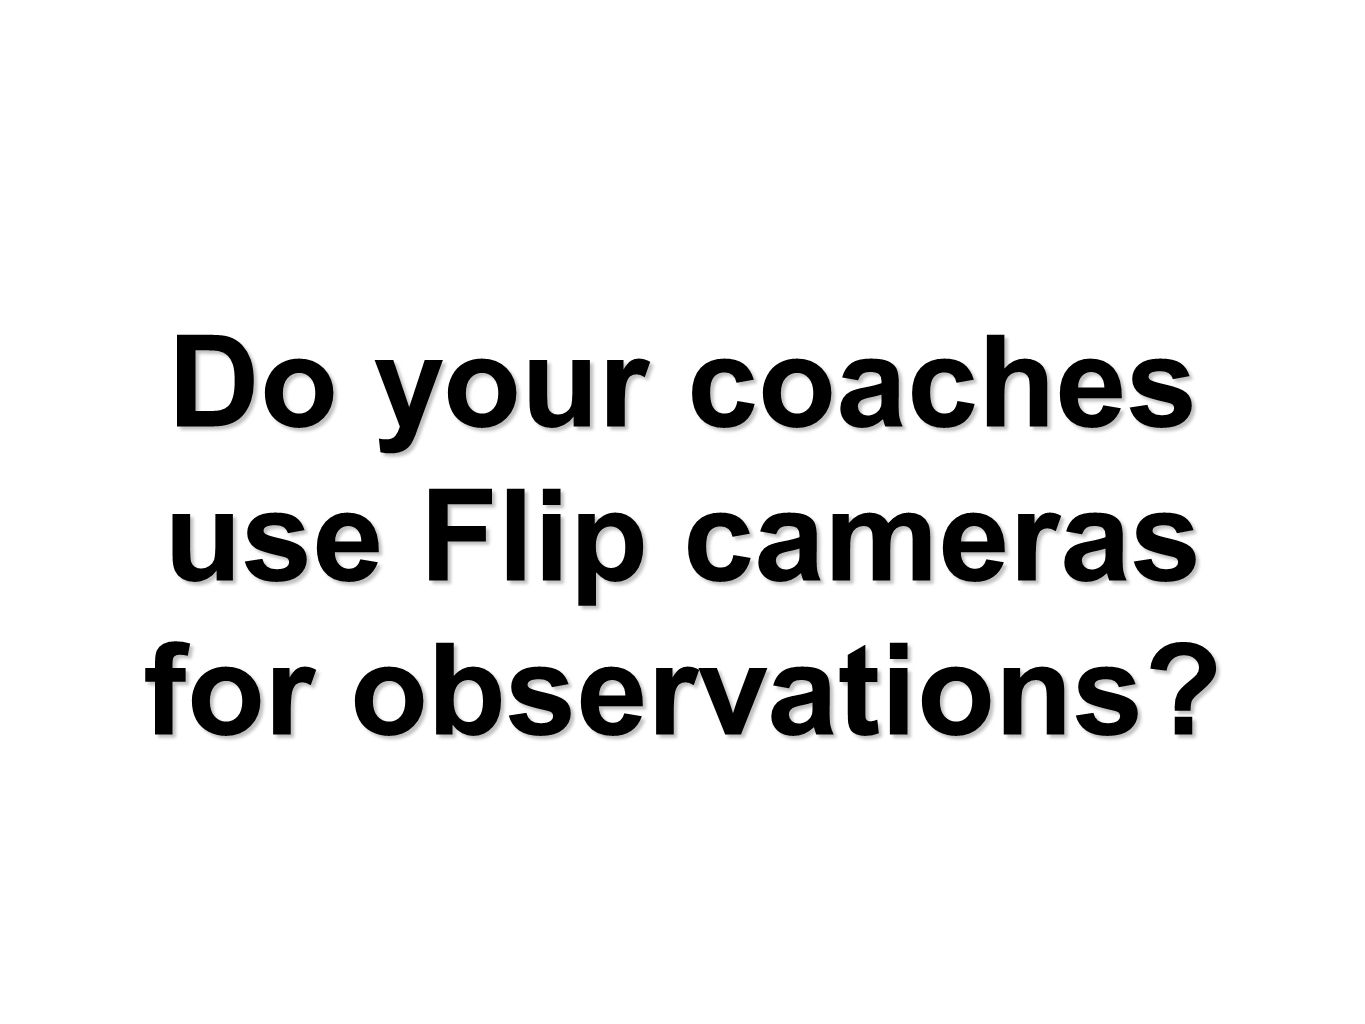 Do your coaches use Flip cameras for observations